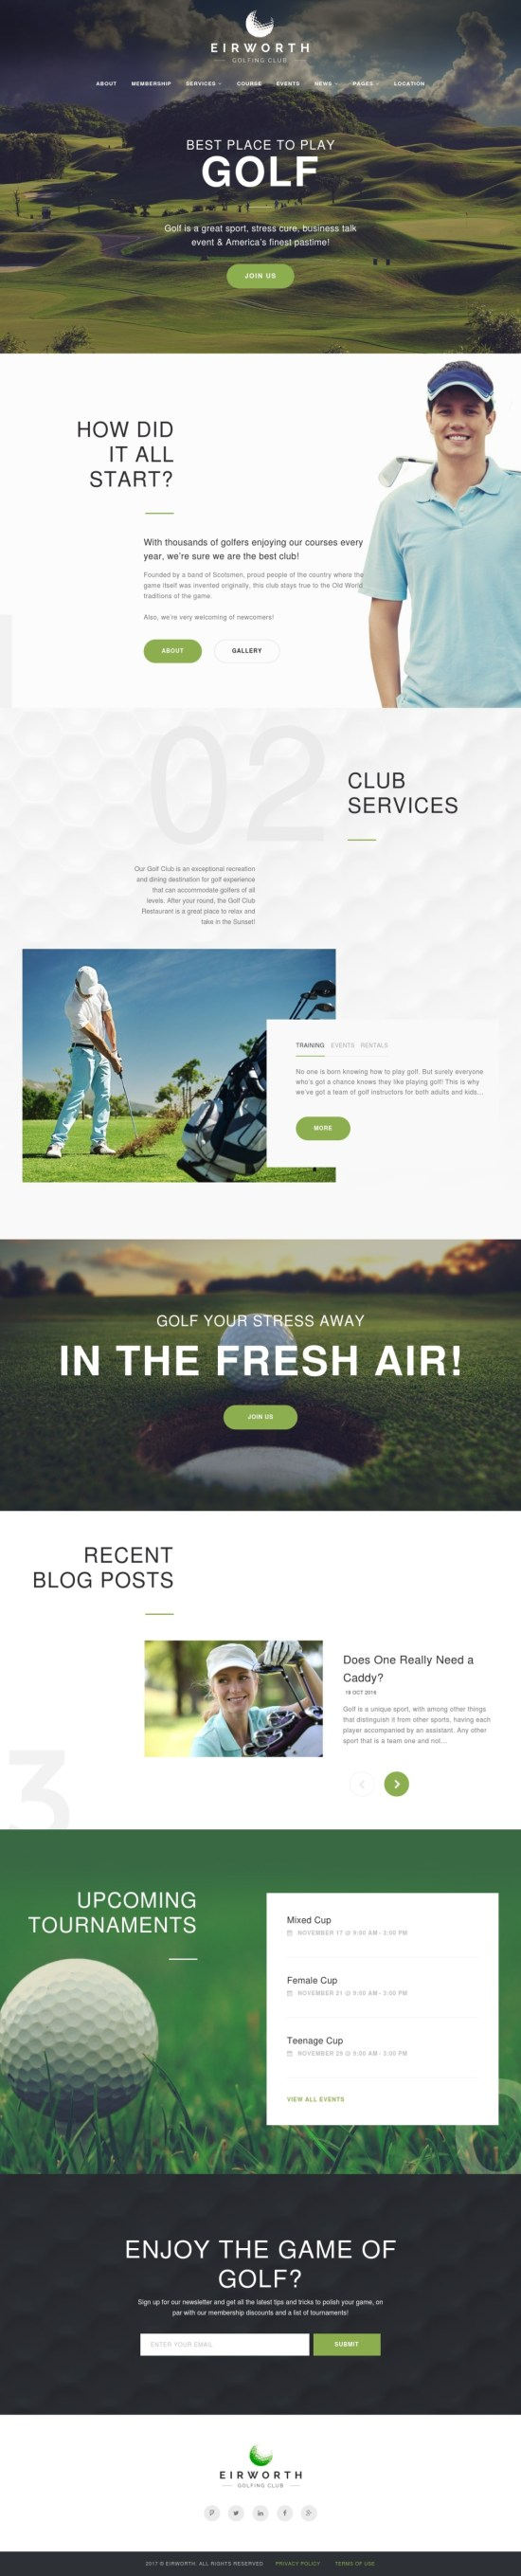 Eirworth WordPress Theme